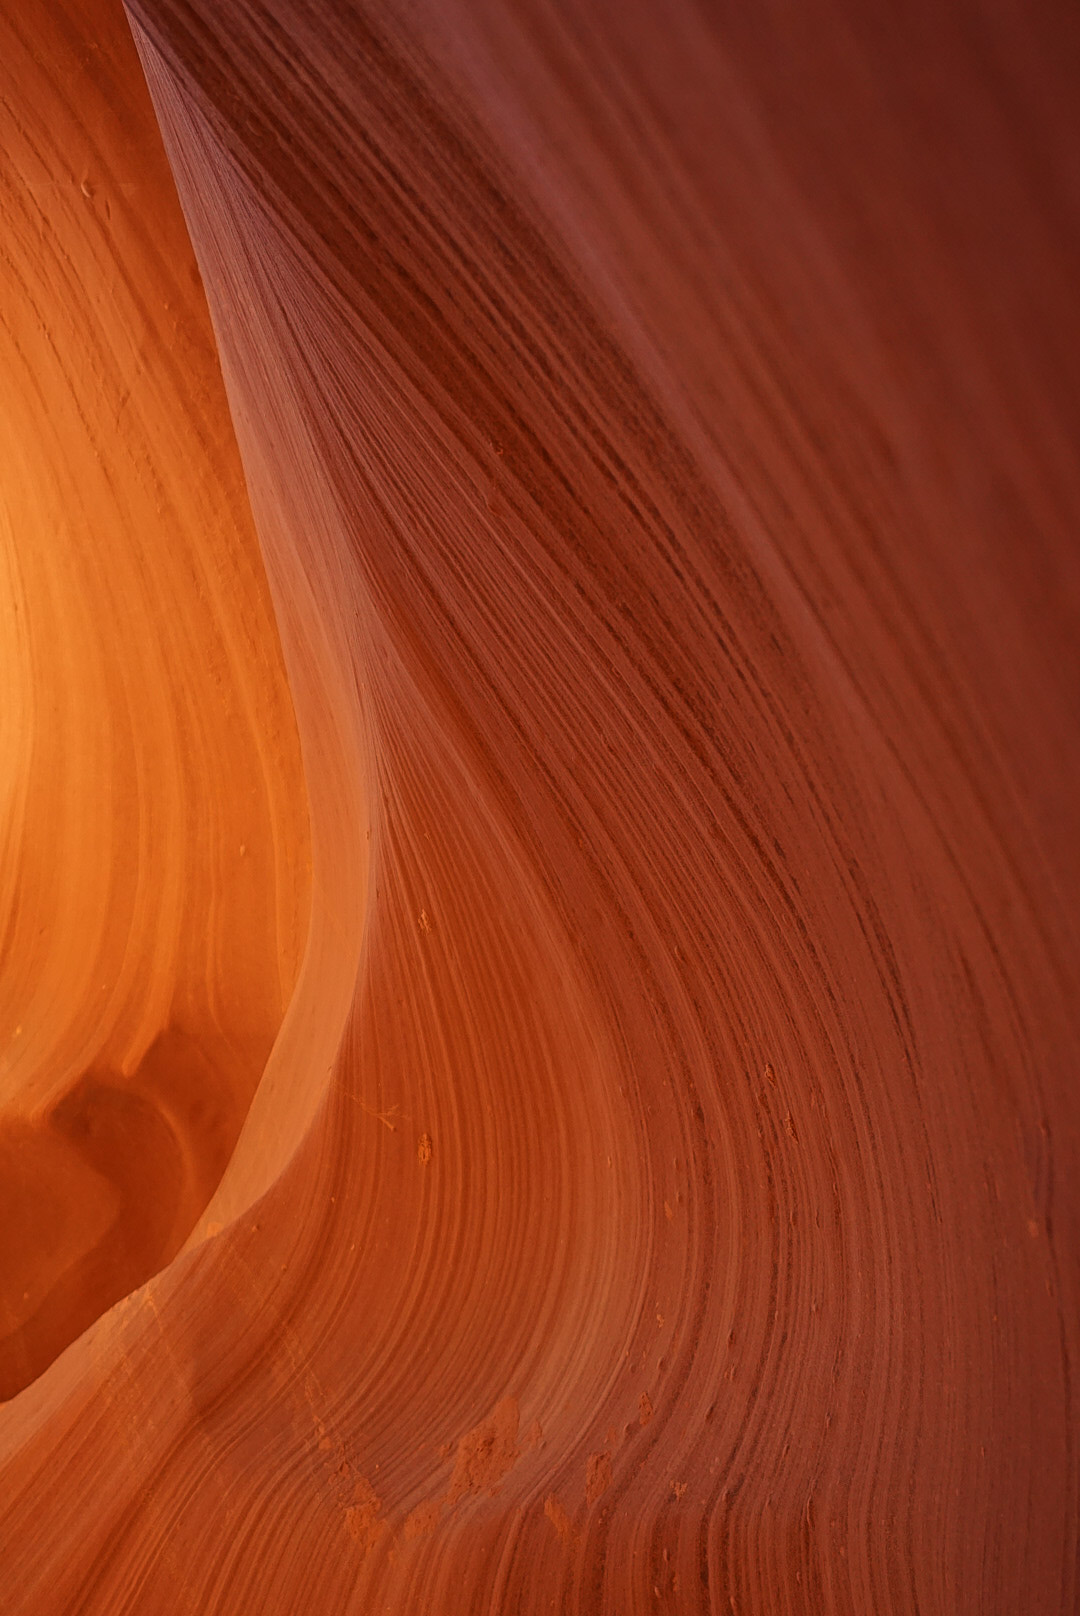 Image from Lower Antelope Canyon